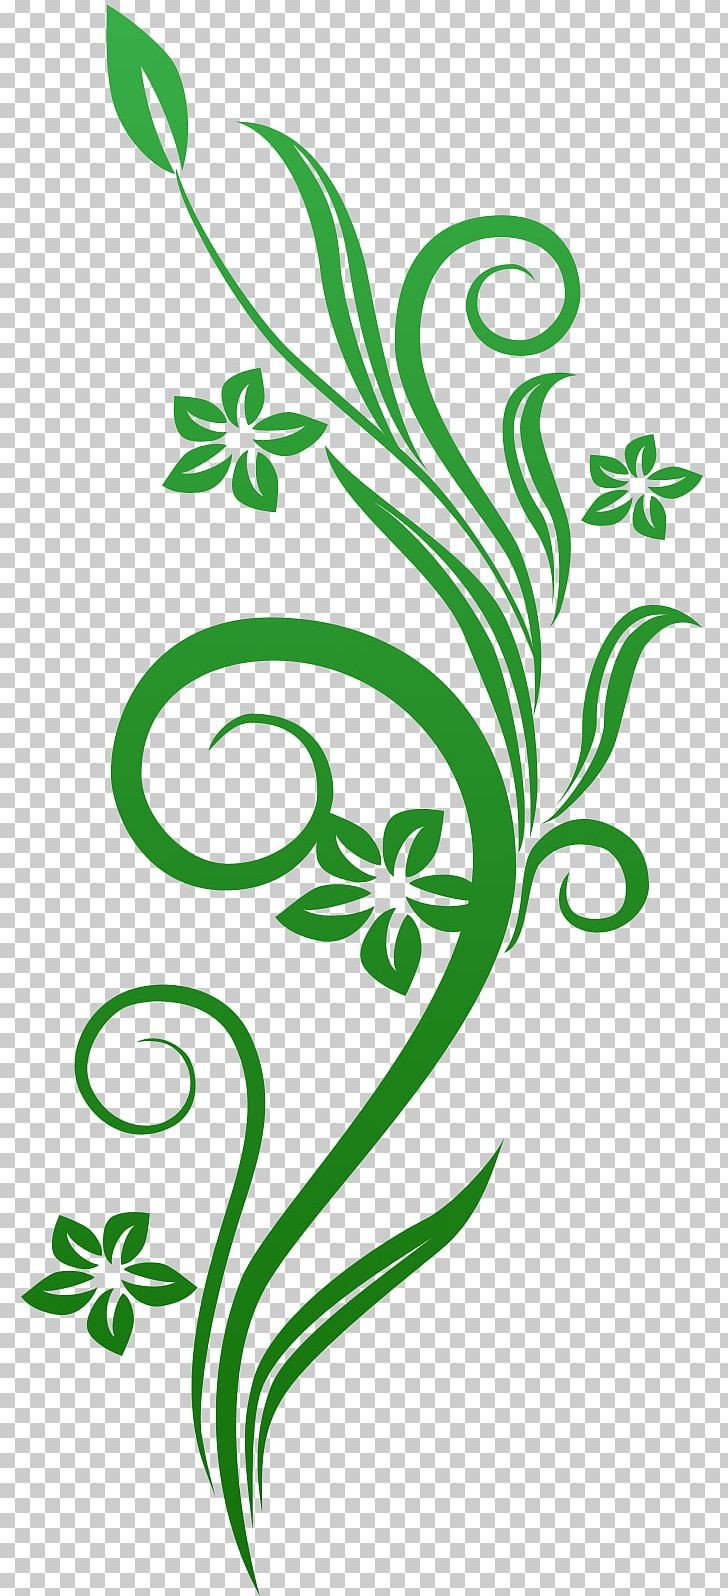 Vine Drawing Flower Png Clipart